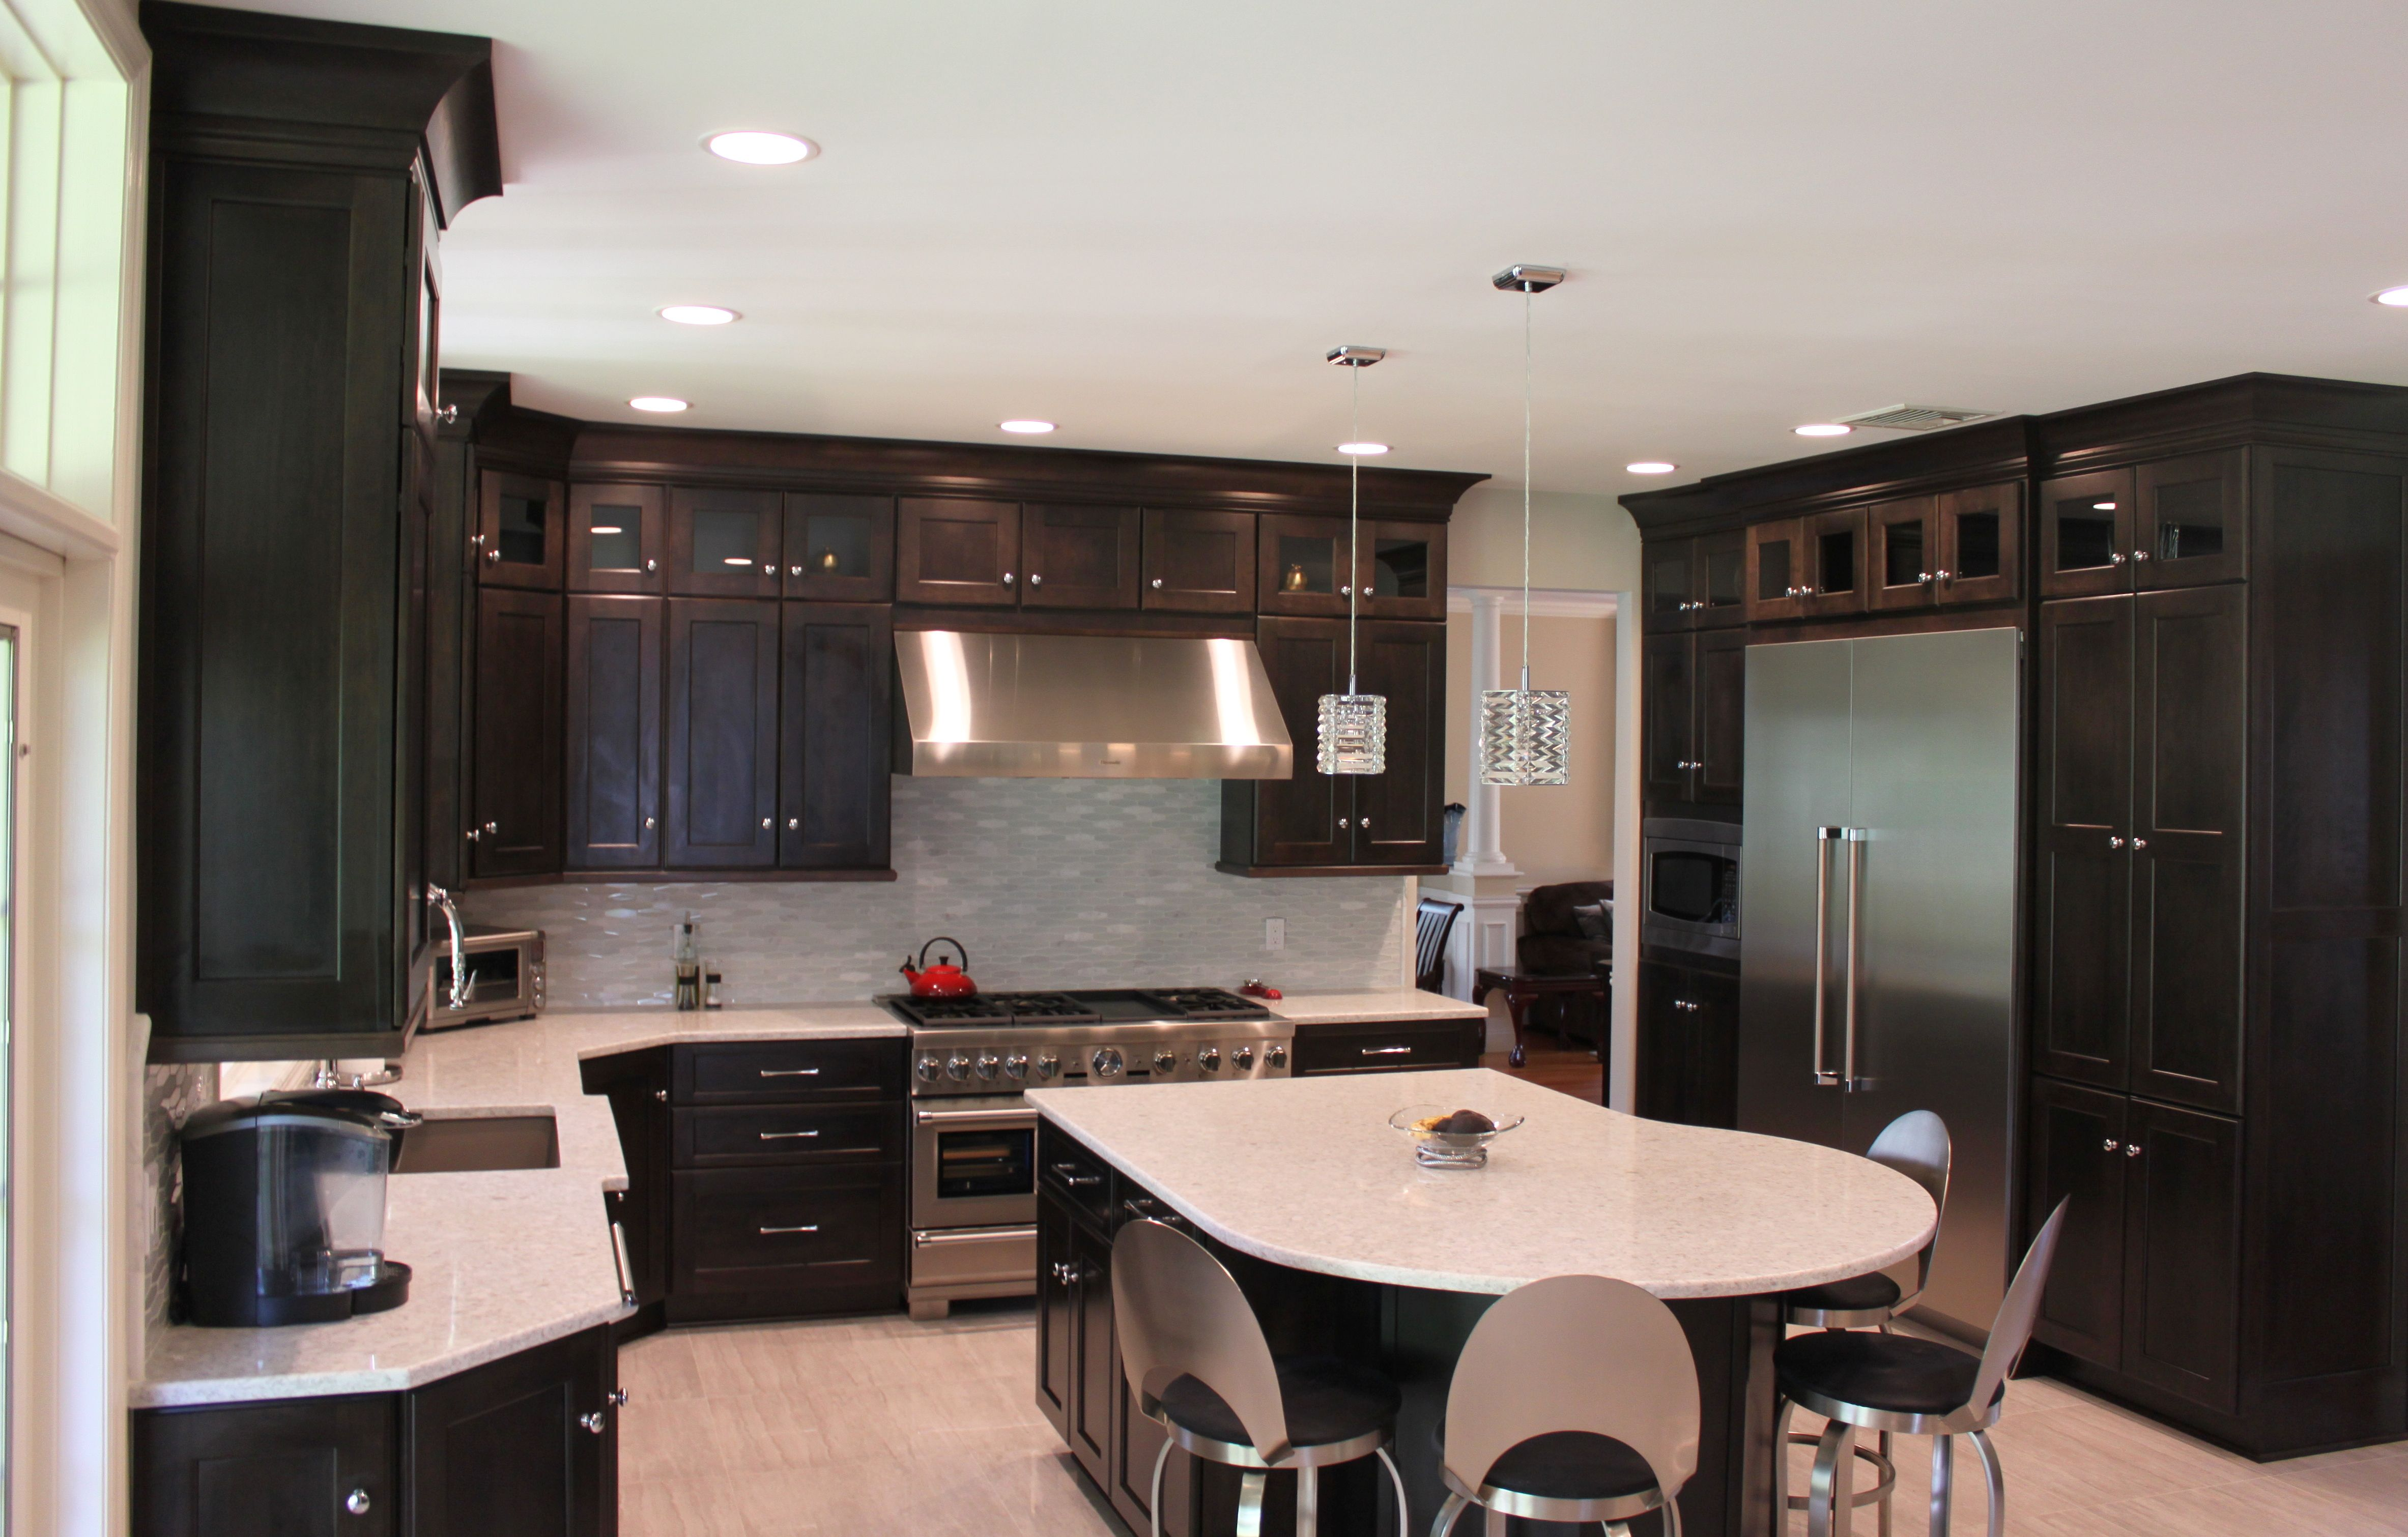 Center Hall Colonial Kitchen With A Nice Open Feel Colonial Kitchen Kitchen And Bath Kitchen